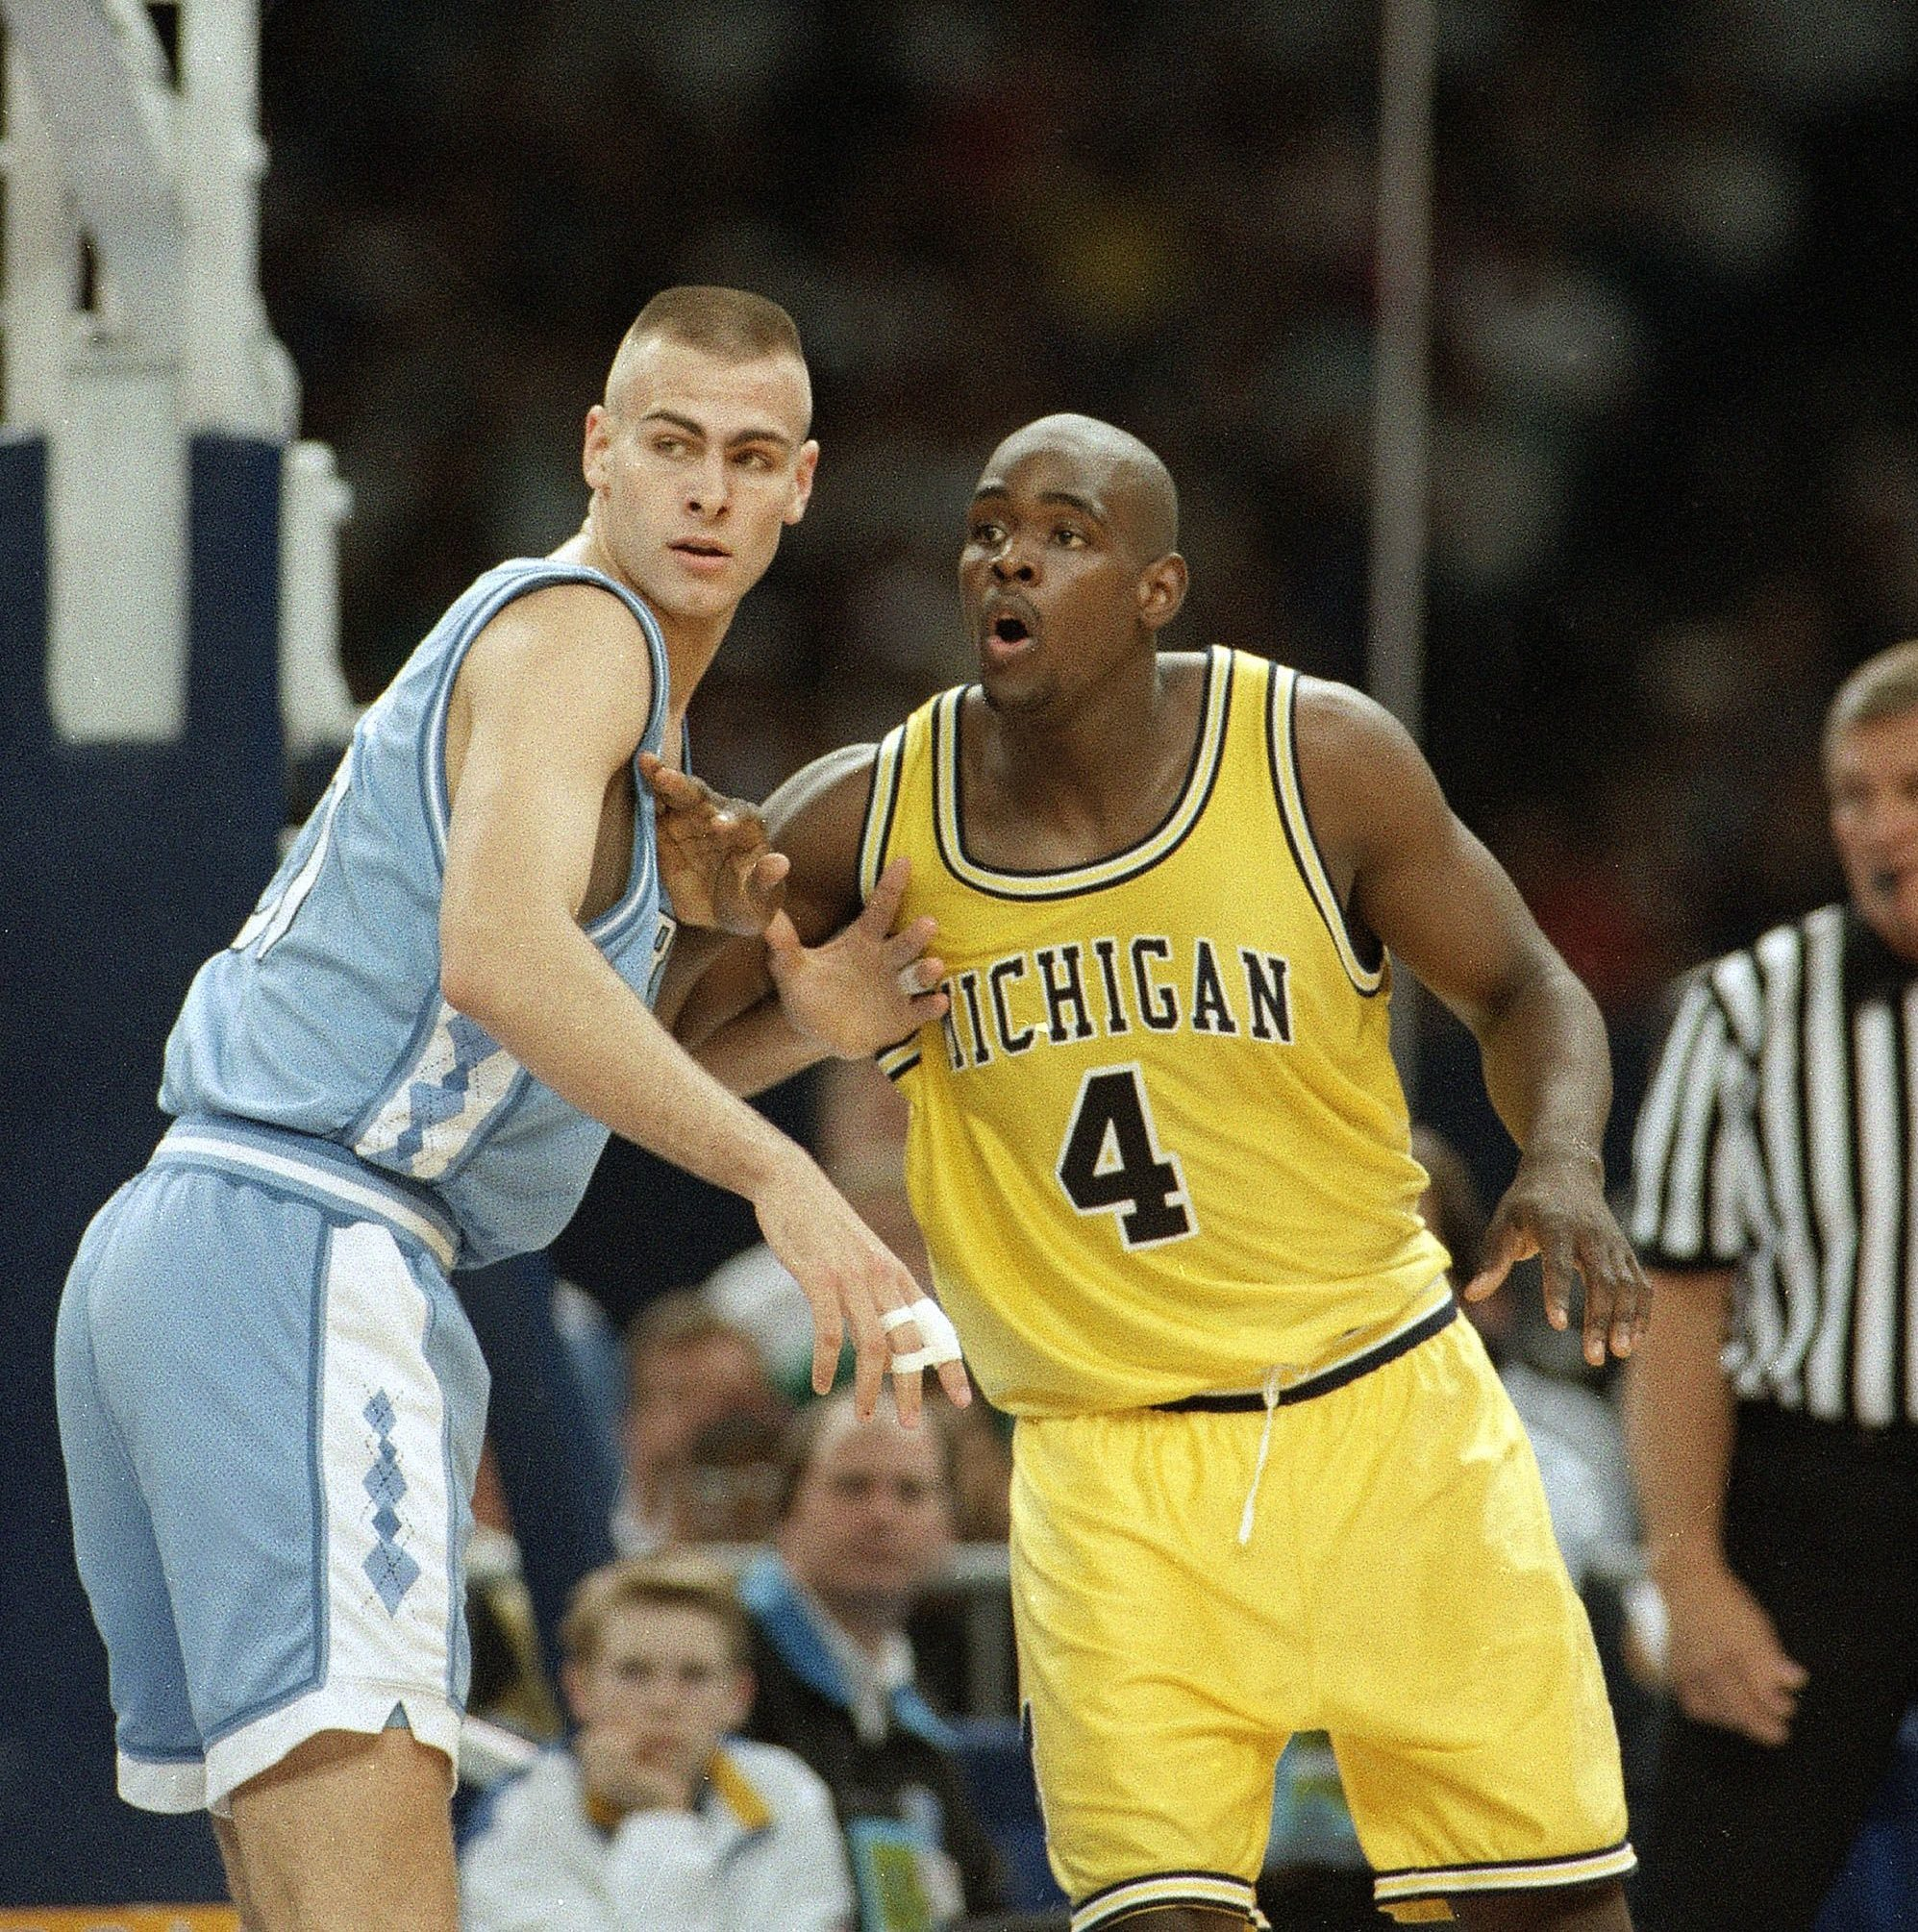 Mandatory Credit: Photo by David Longstreath/AP/Shutterstock (6566326a) Montross Webber North Carolina's Eric Montross, left, guards Michigan's Chris Webber during their Final Four championship game at the Superdome in New Orleans NCAA MONTROSS WEBBER 1993, NEW ORLEANS, USA